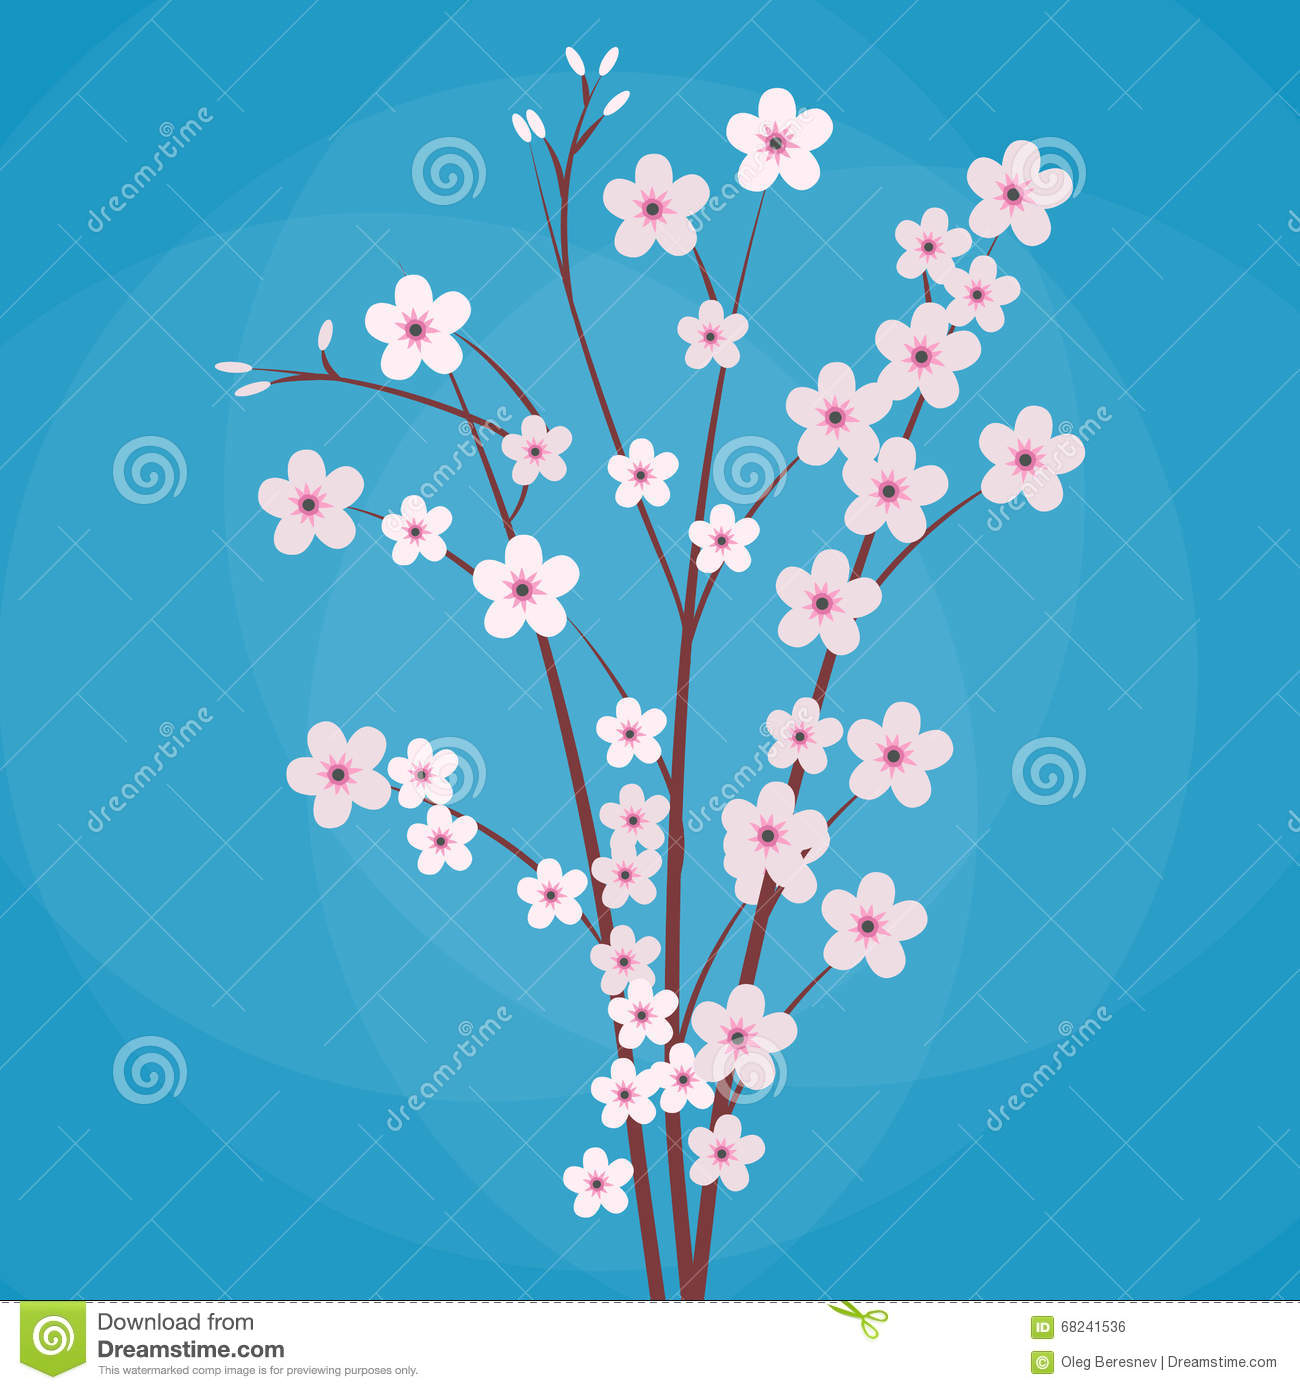 Sakura Japan Cherry Branch Stock Vector - Image: 68241536